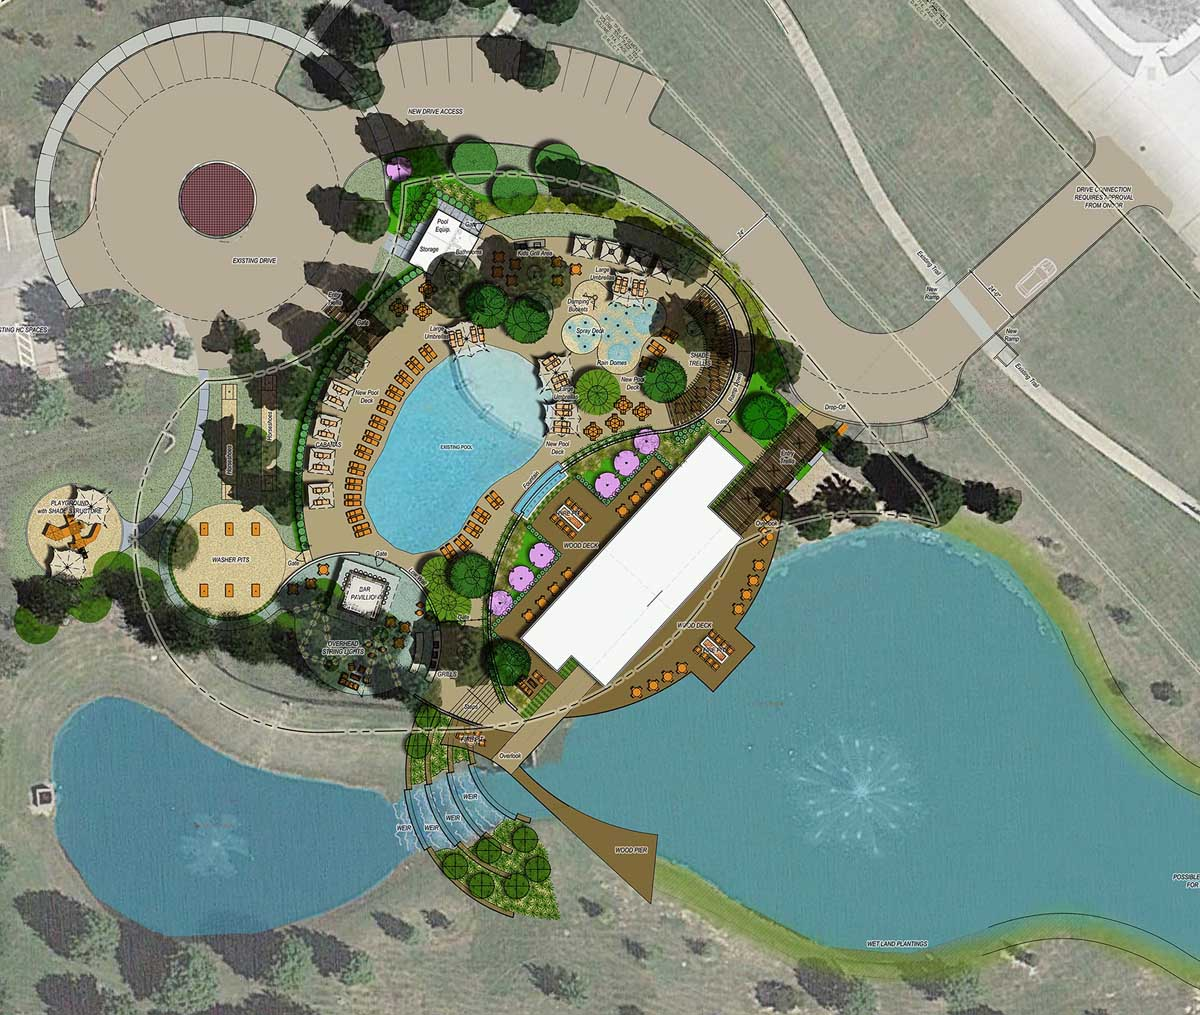 01 RESORT AMENTY CENTER - SITE PLAN